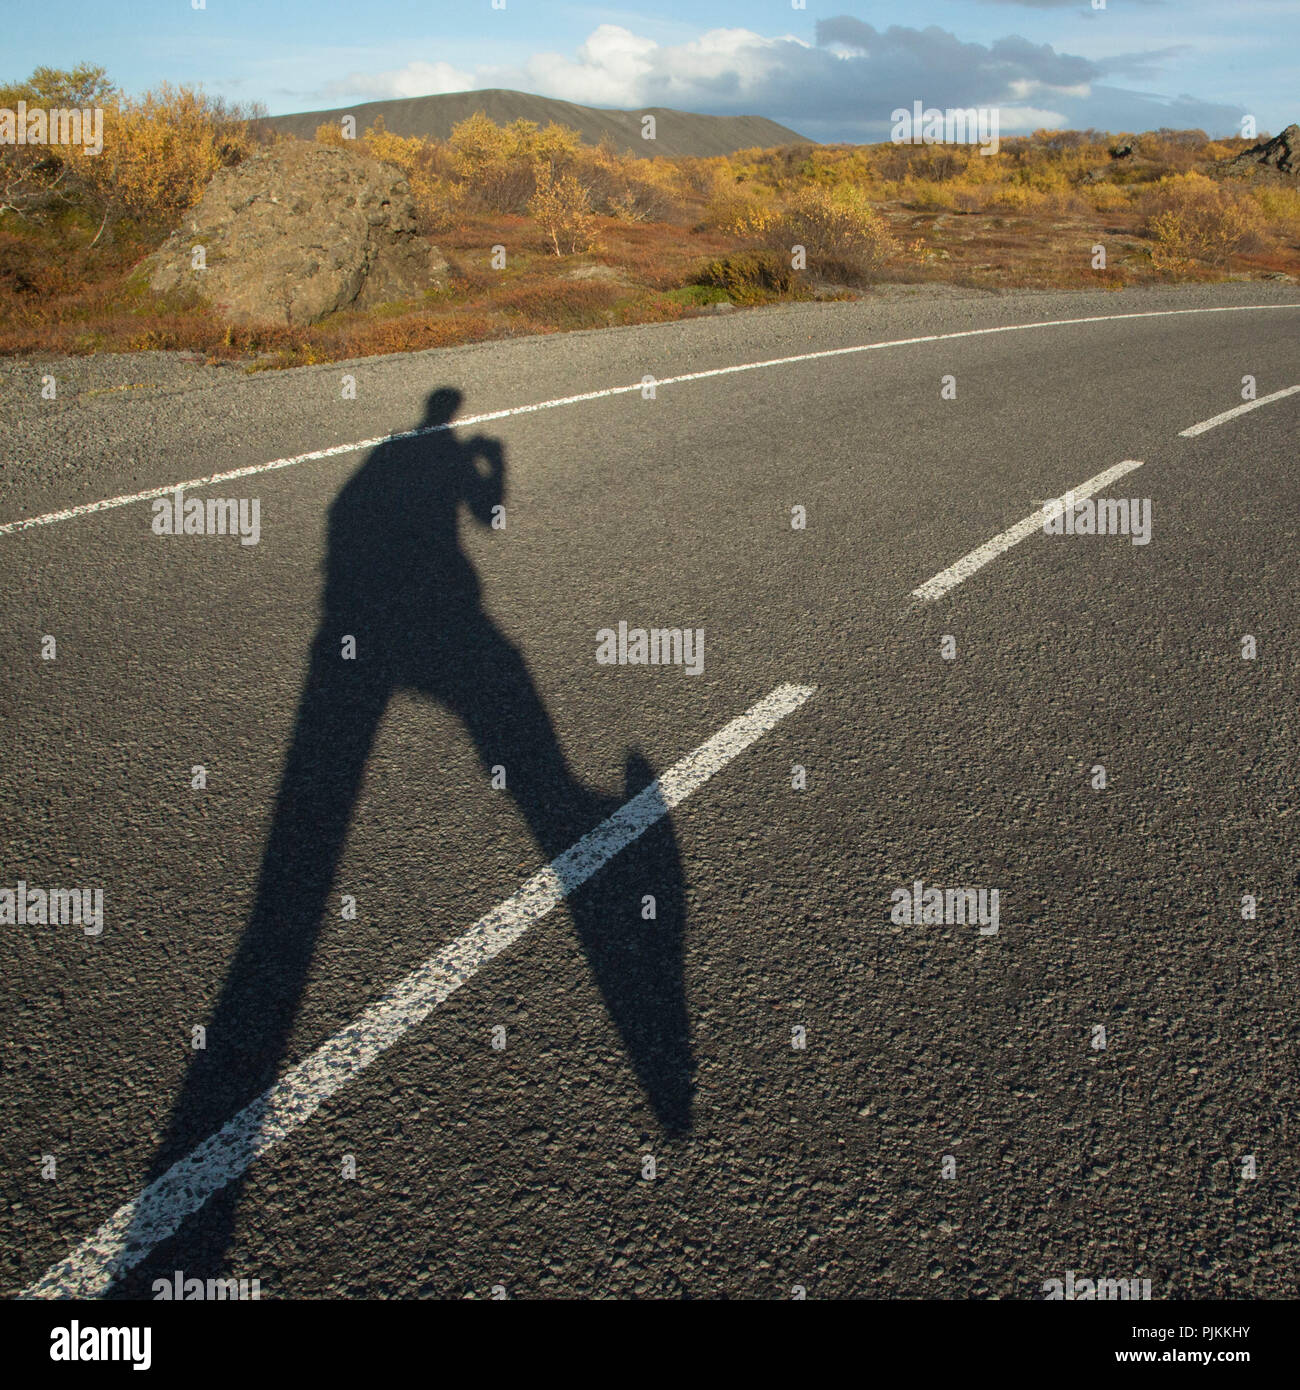 Iceland, Myvatn, human shadow on road, lava field Dimmuborgir, autumnal foliage, dwarf birches, - Stock Image